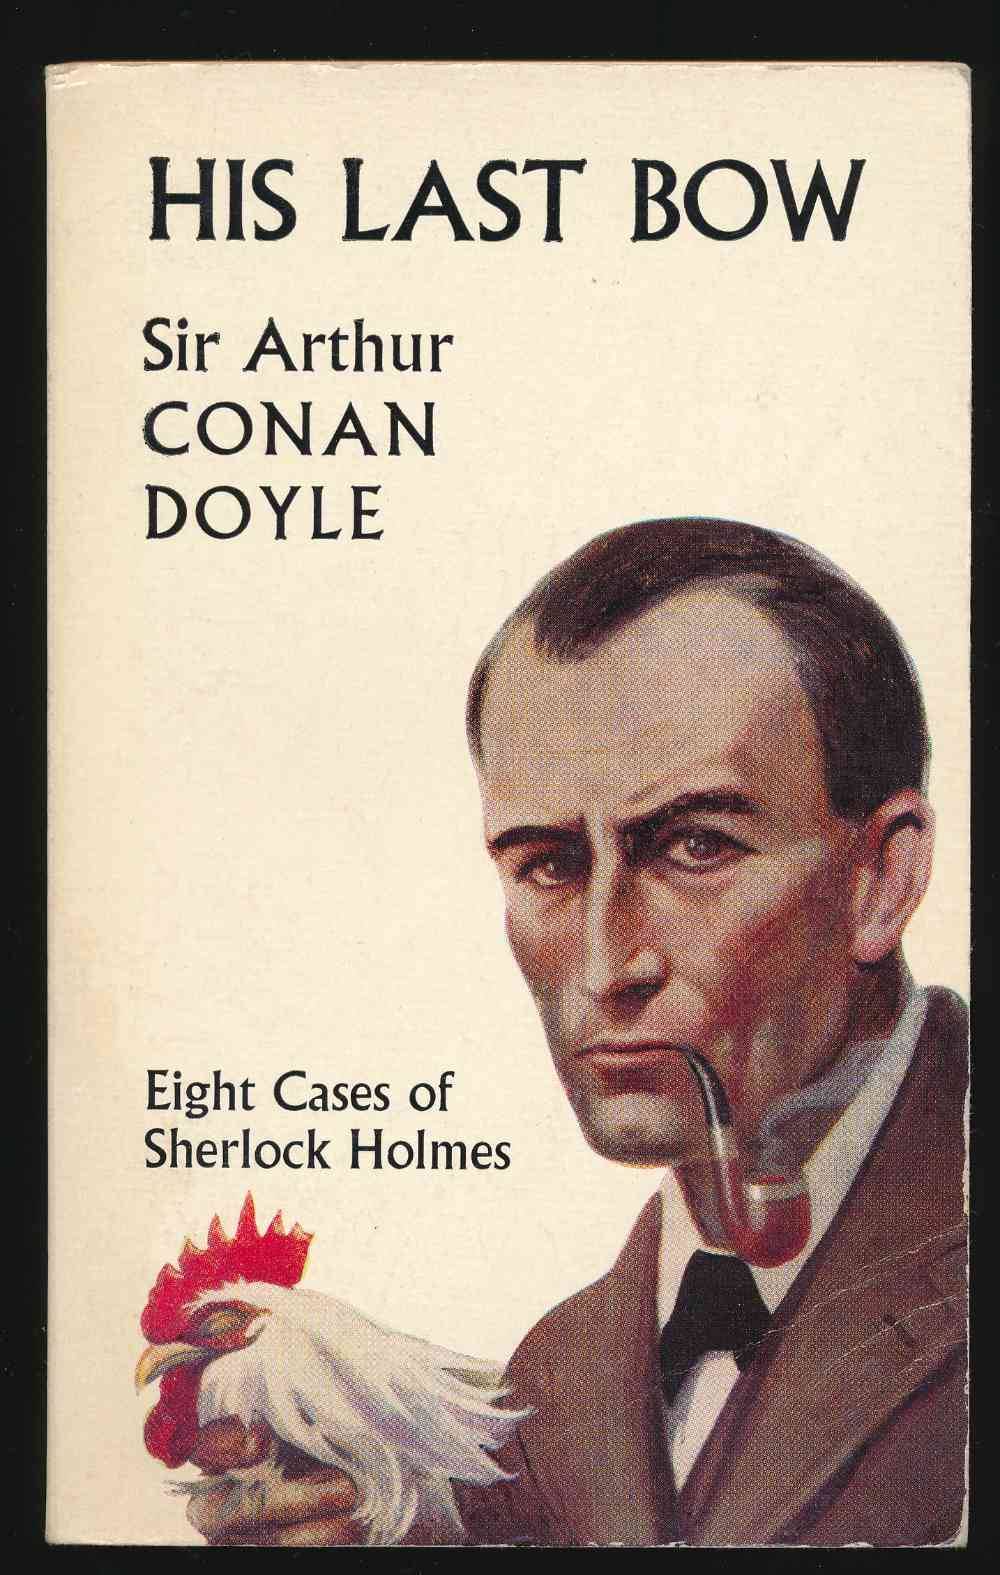 His last bow : some reminiscences of Sherlock Holmes